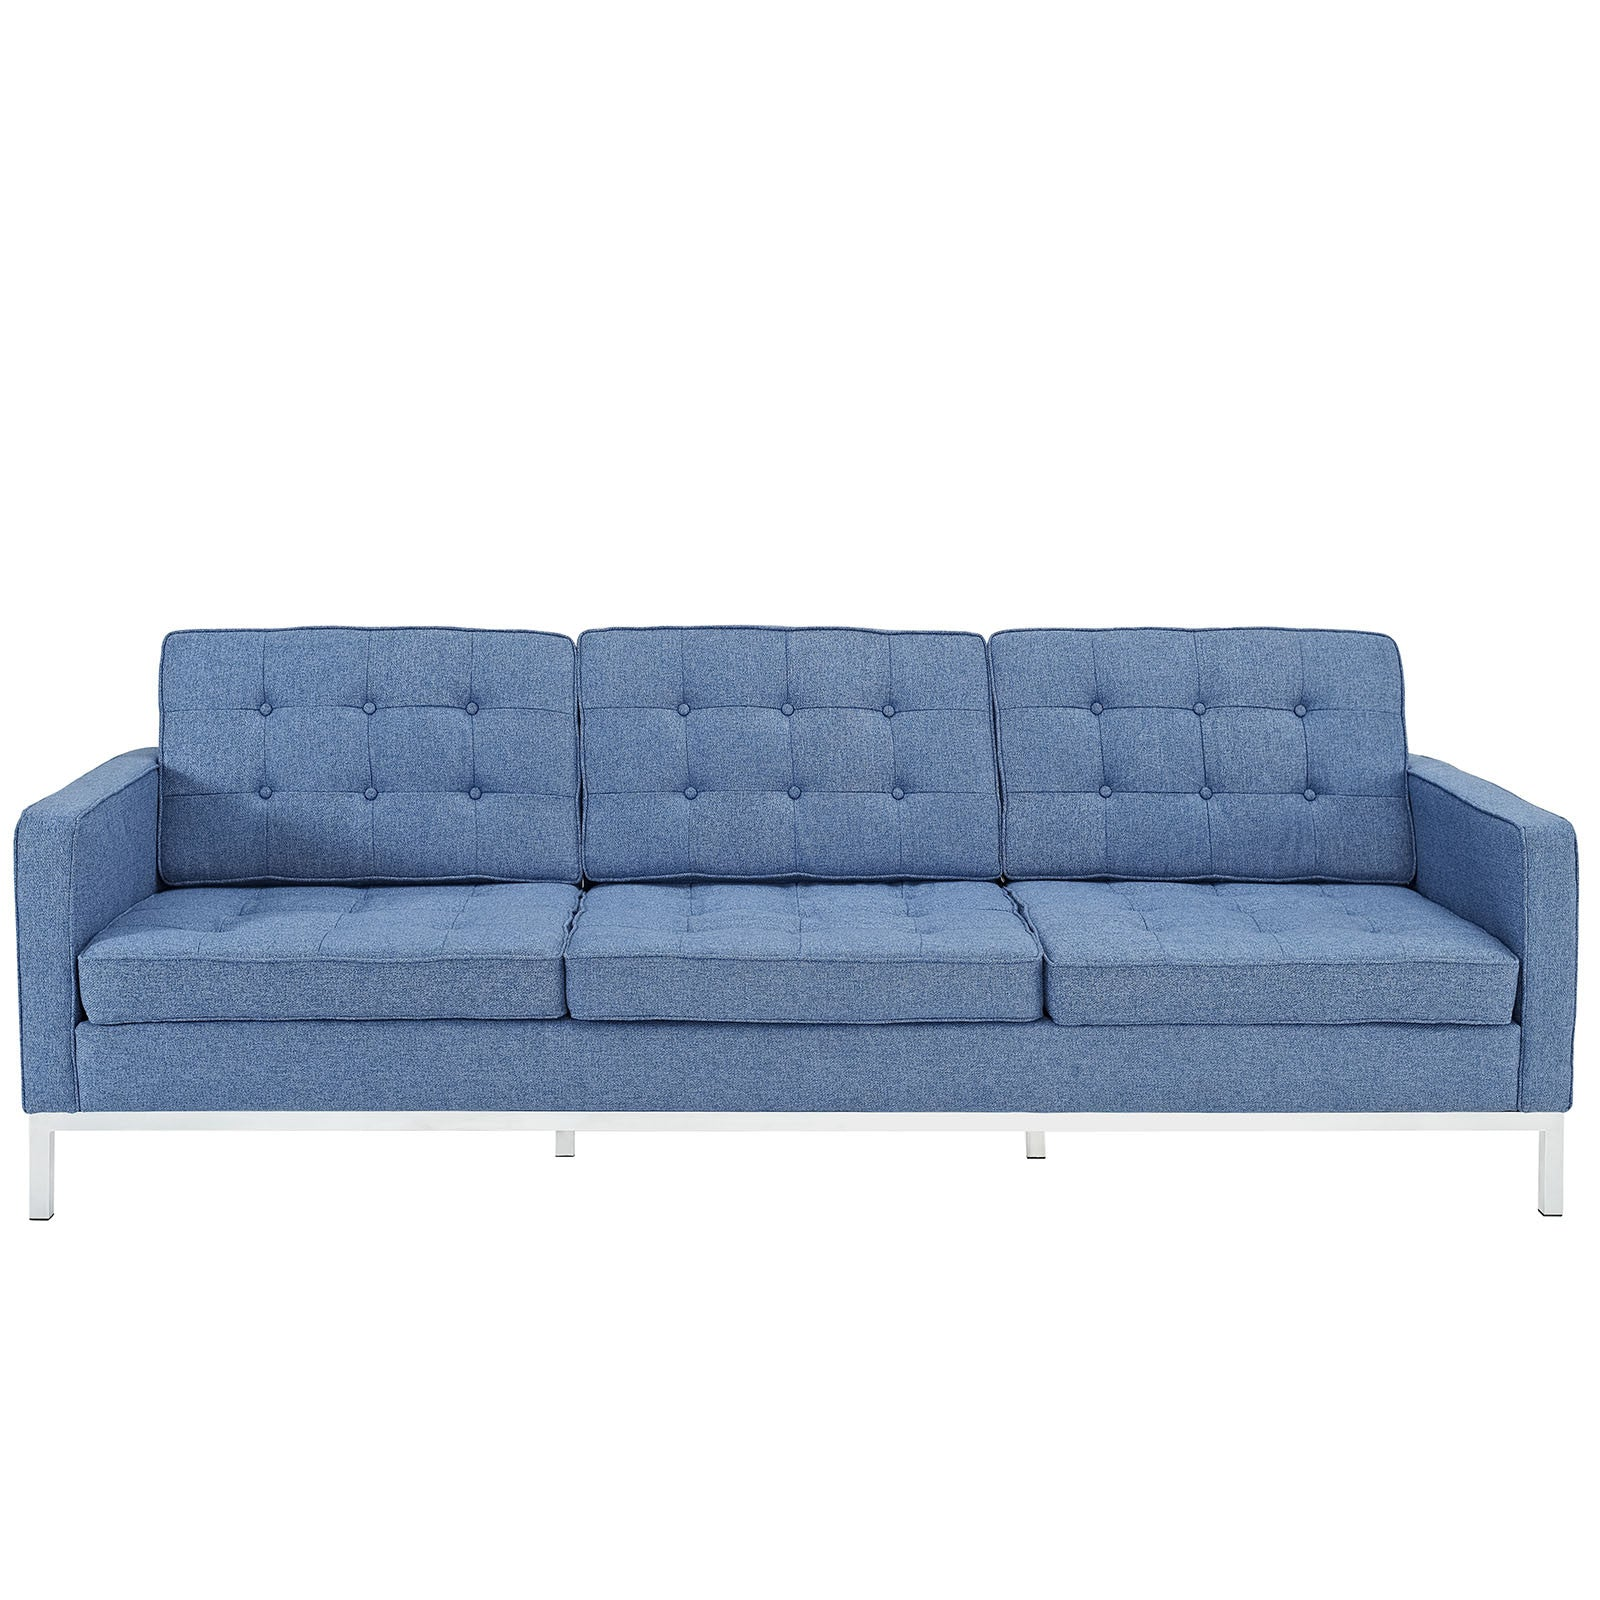 Nice ... Florence Knoll Sofa Reproduction (Fabric)   The Modern Source   4 ...